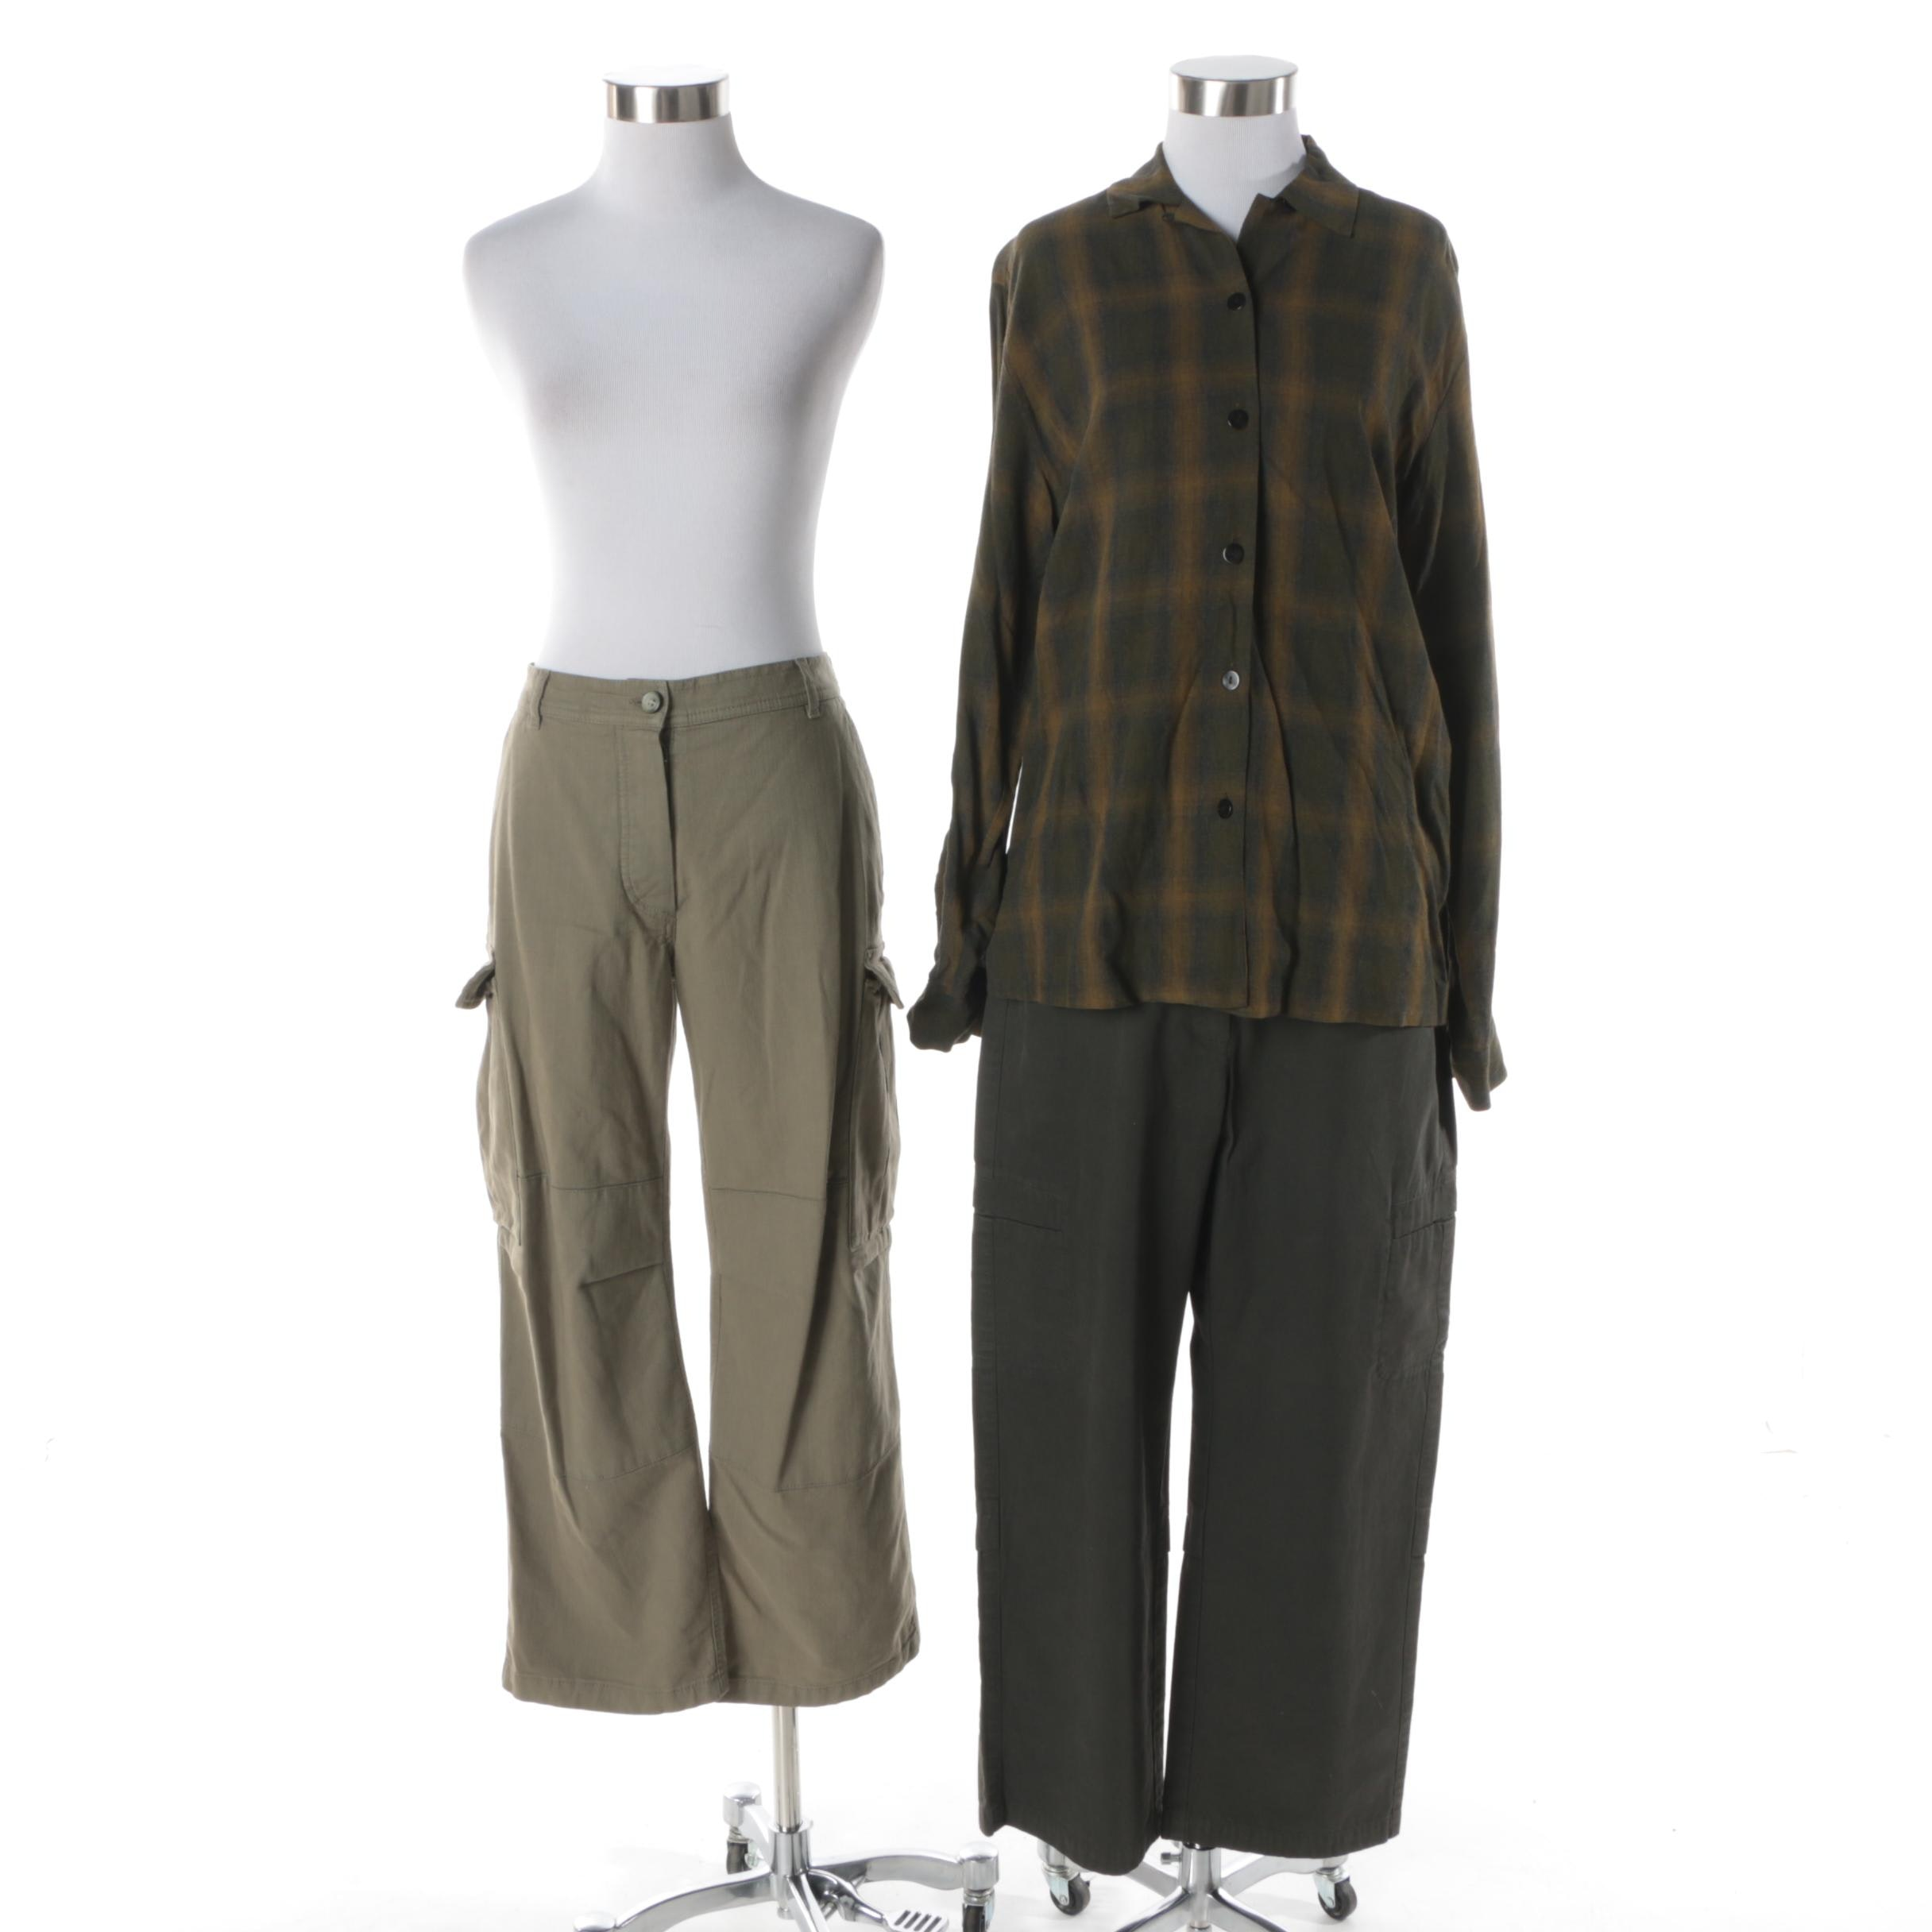 Women's Cargo Pants and Button-Front Shirt Including Piazza Sempione